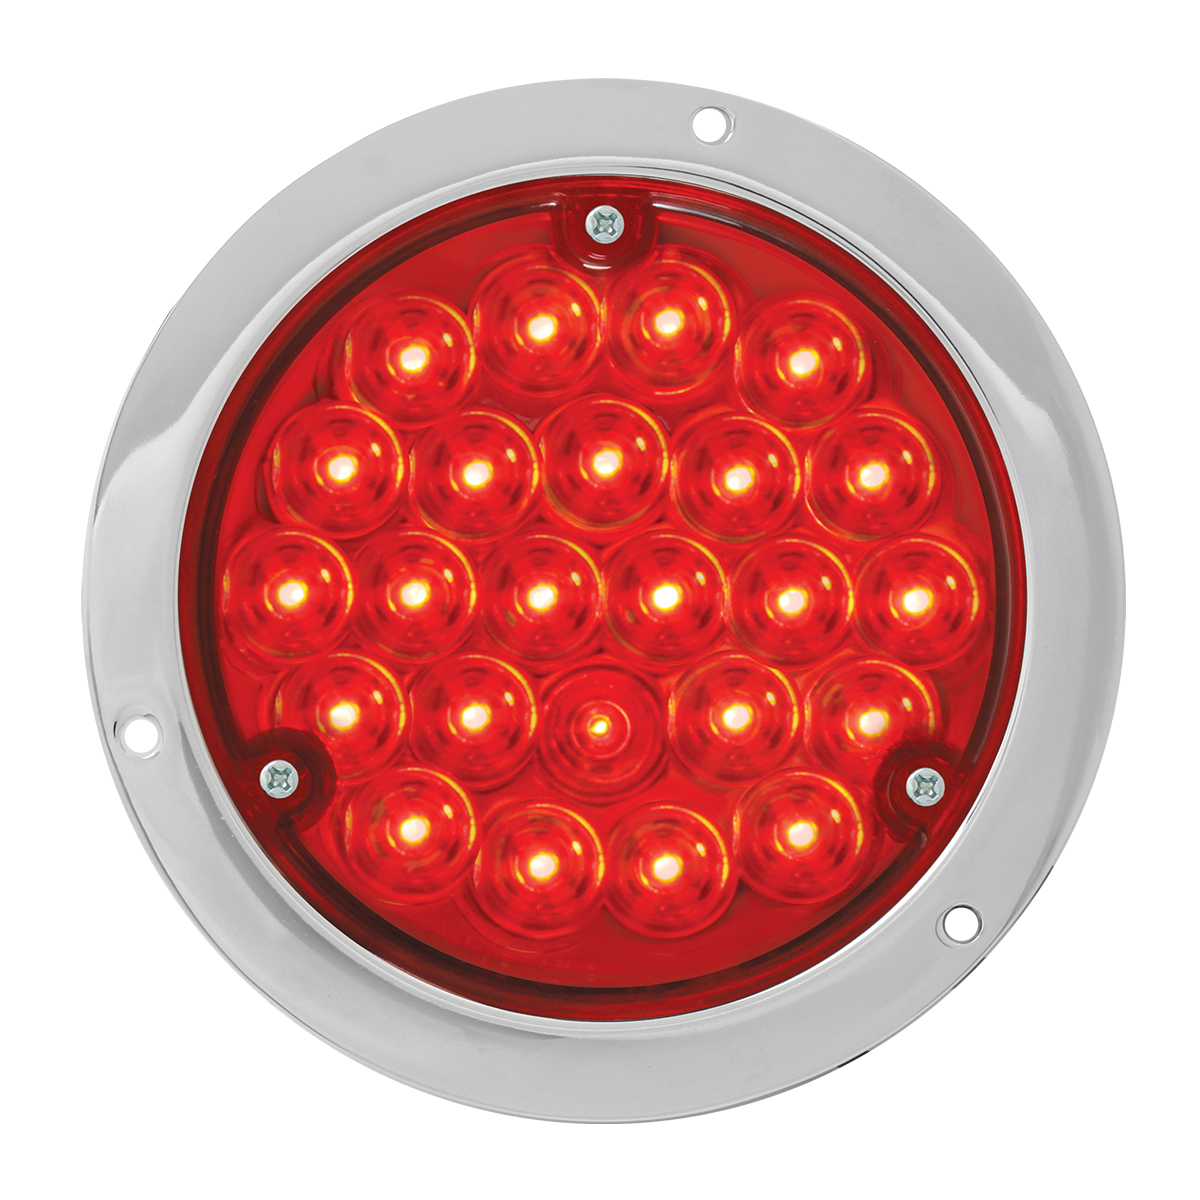 "87582 4"" Pearl LED Light in Red/Red w/ Chrome Housing"